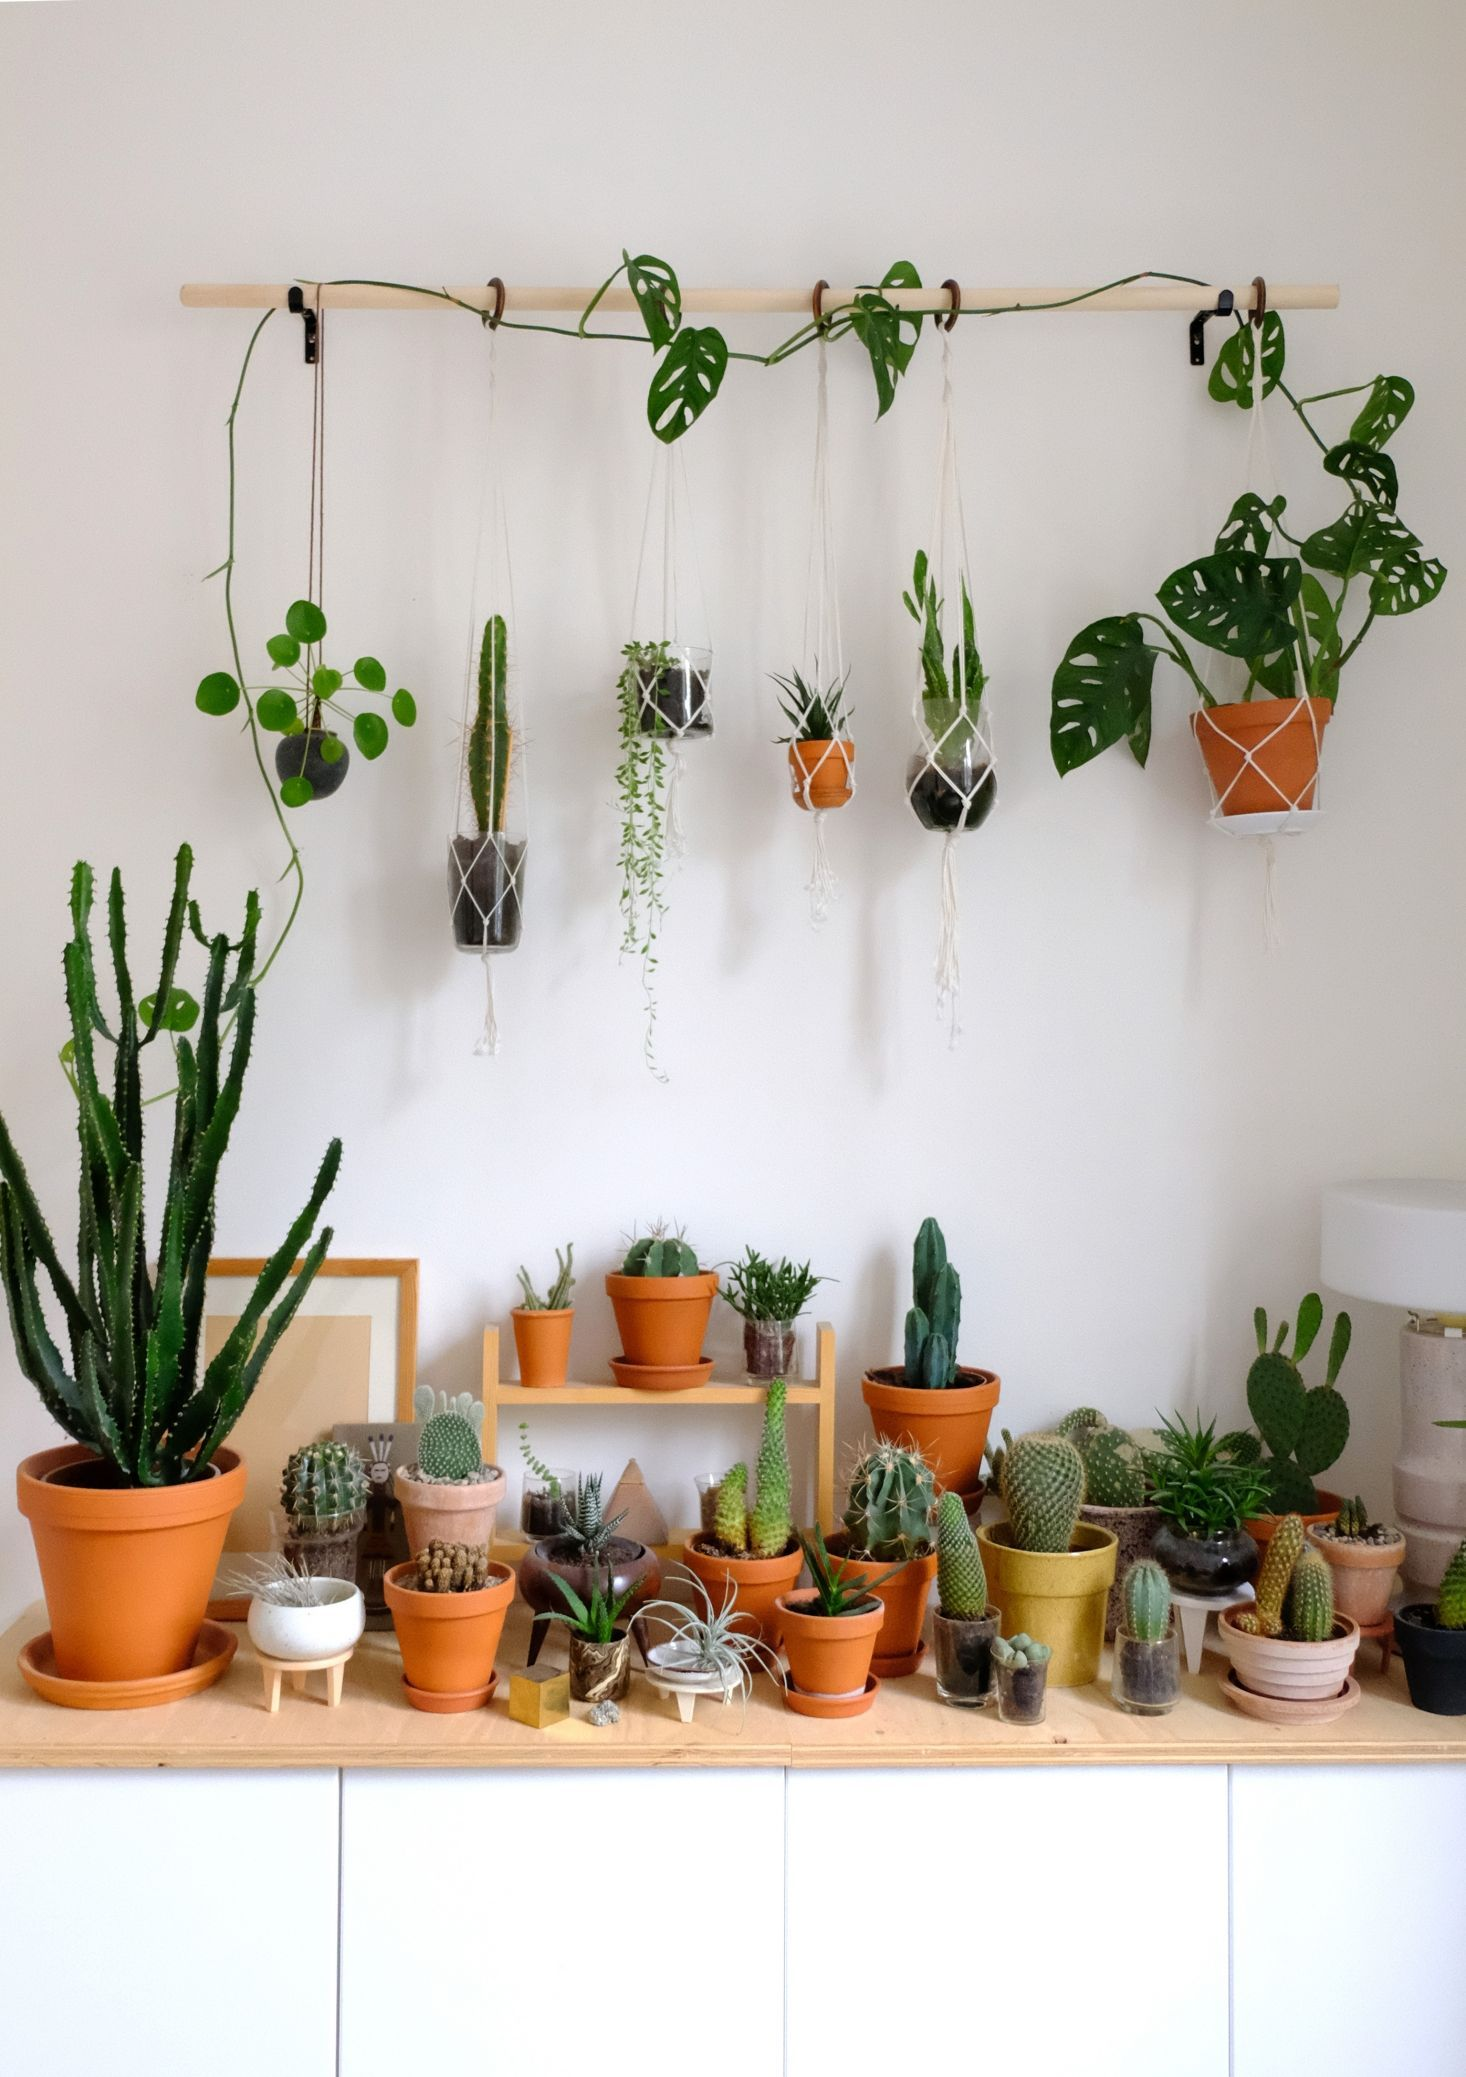 DIY hanging plant wall with macrame planters Indoor